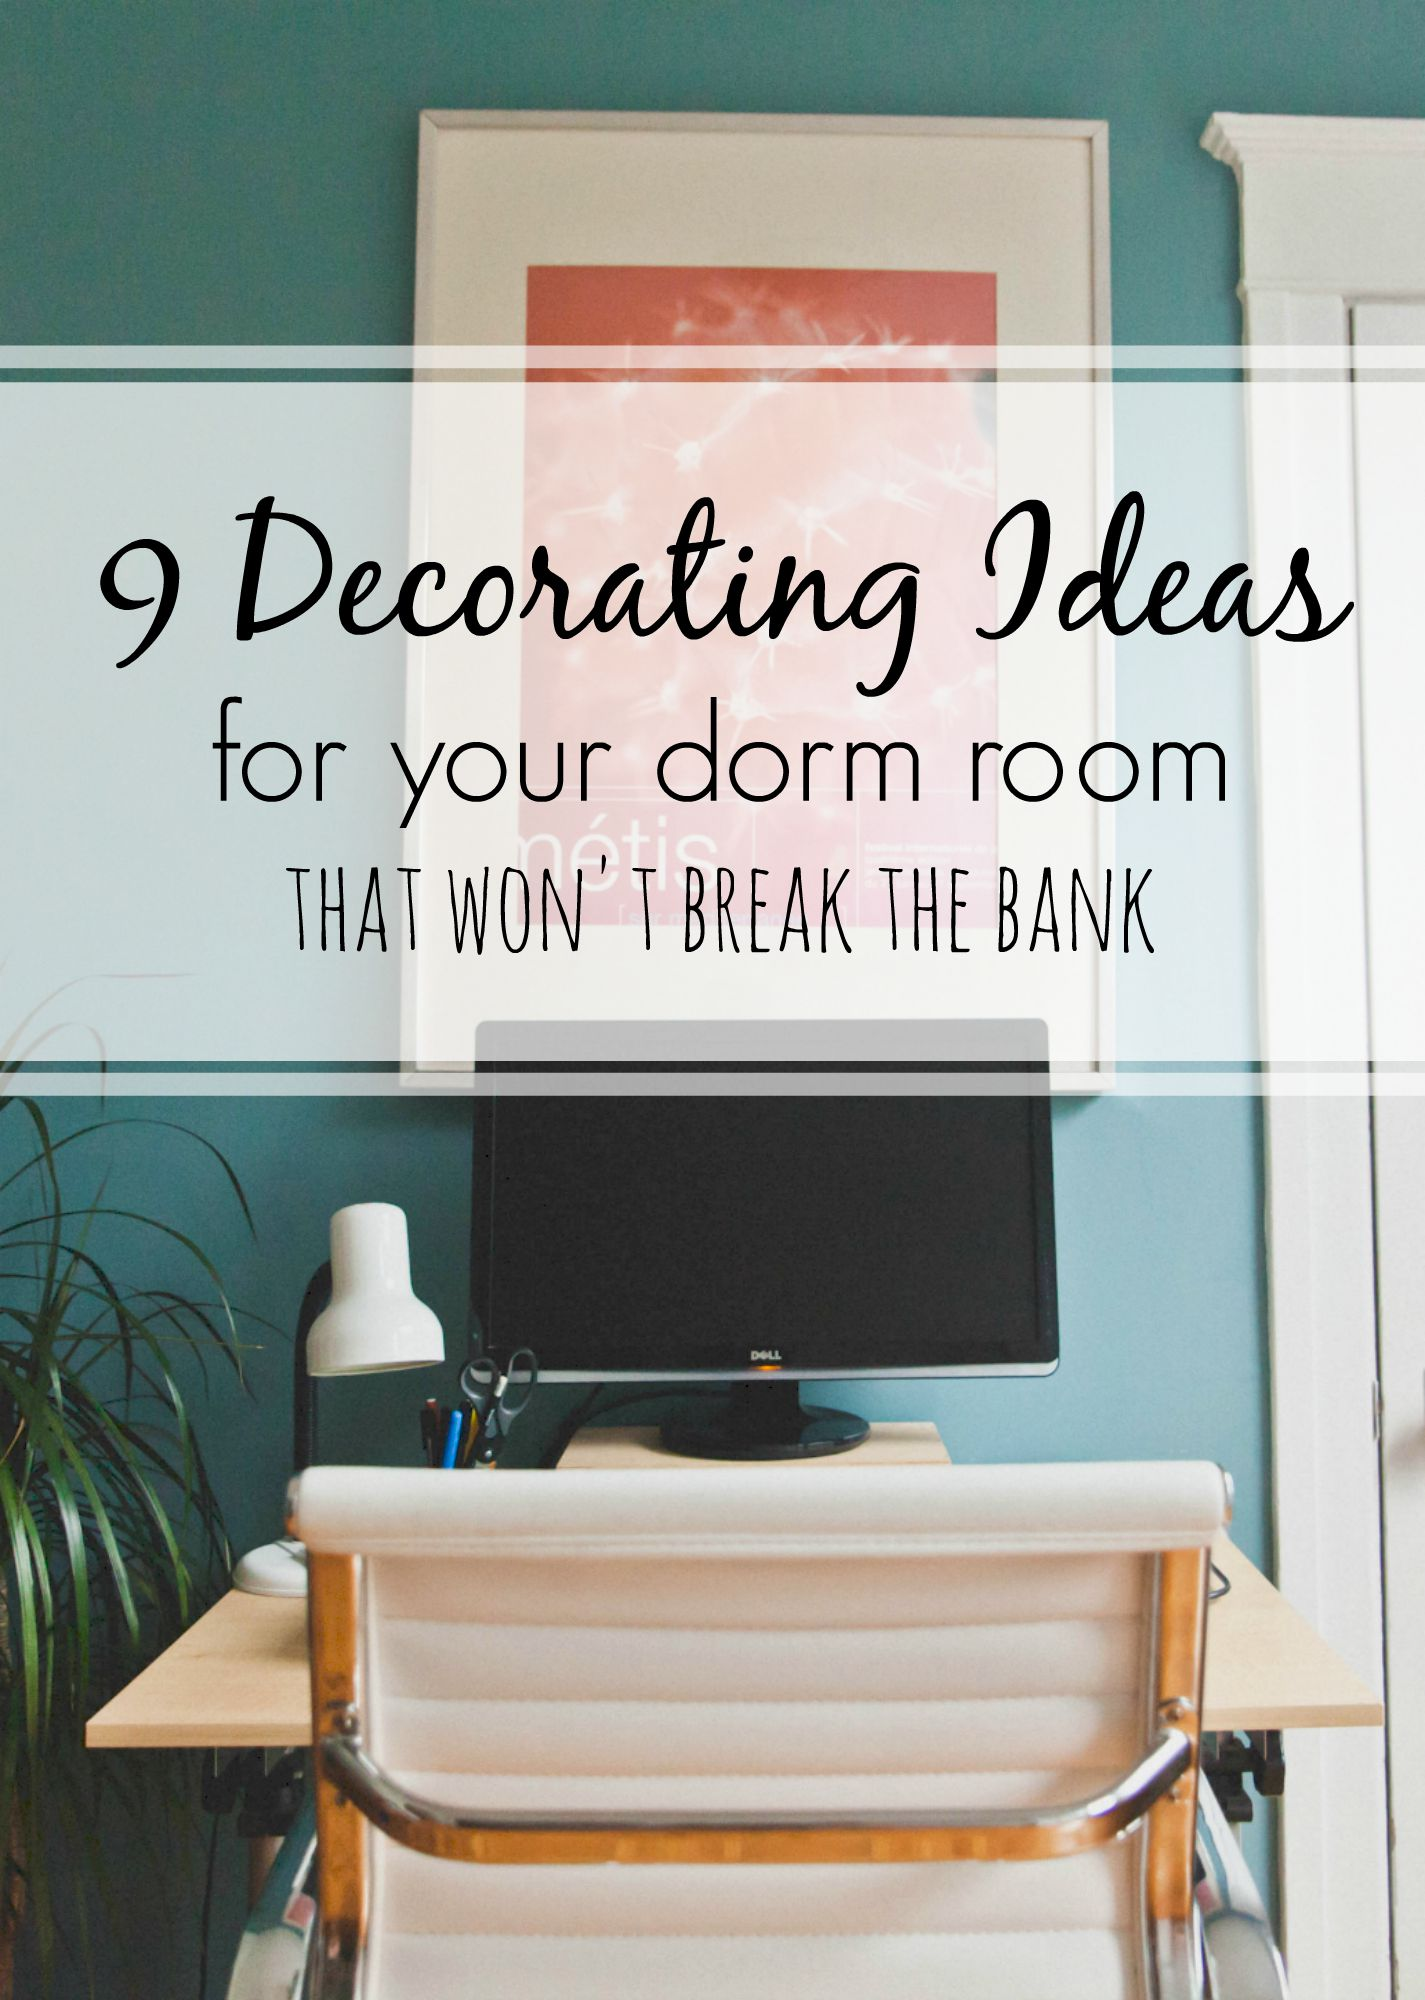 Decorating your dorm room can be a ton of fun, but it can be hard to find ideas for small rooms that still fit with your budget! Here are some ideas to help maximize creativity and functionality of your dorm room without maximizing spending!